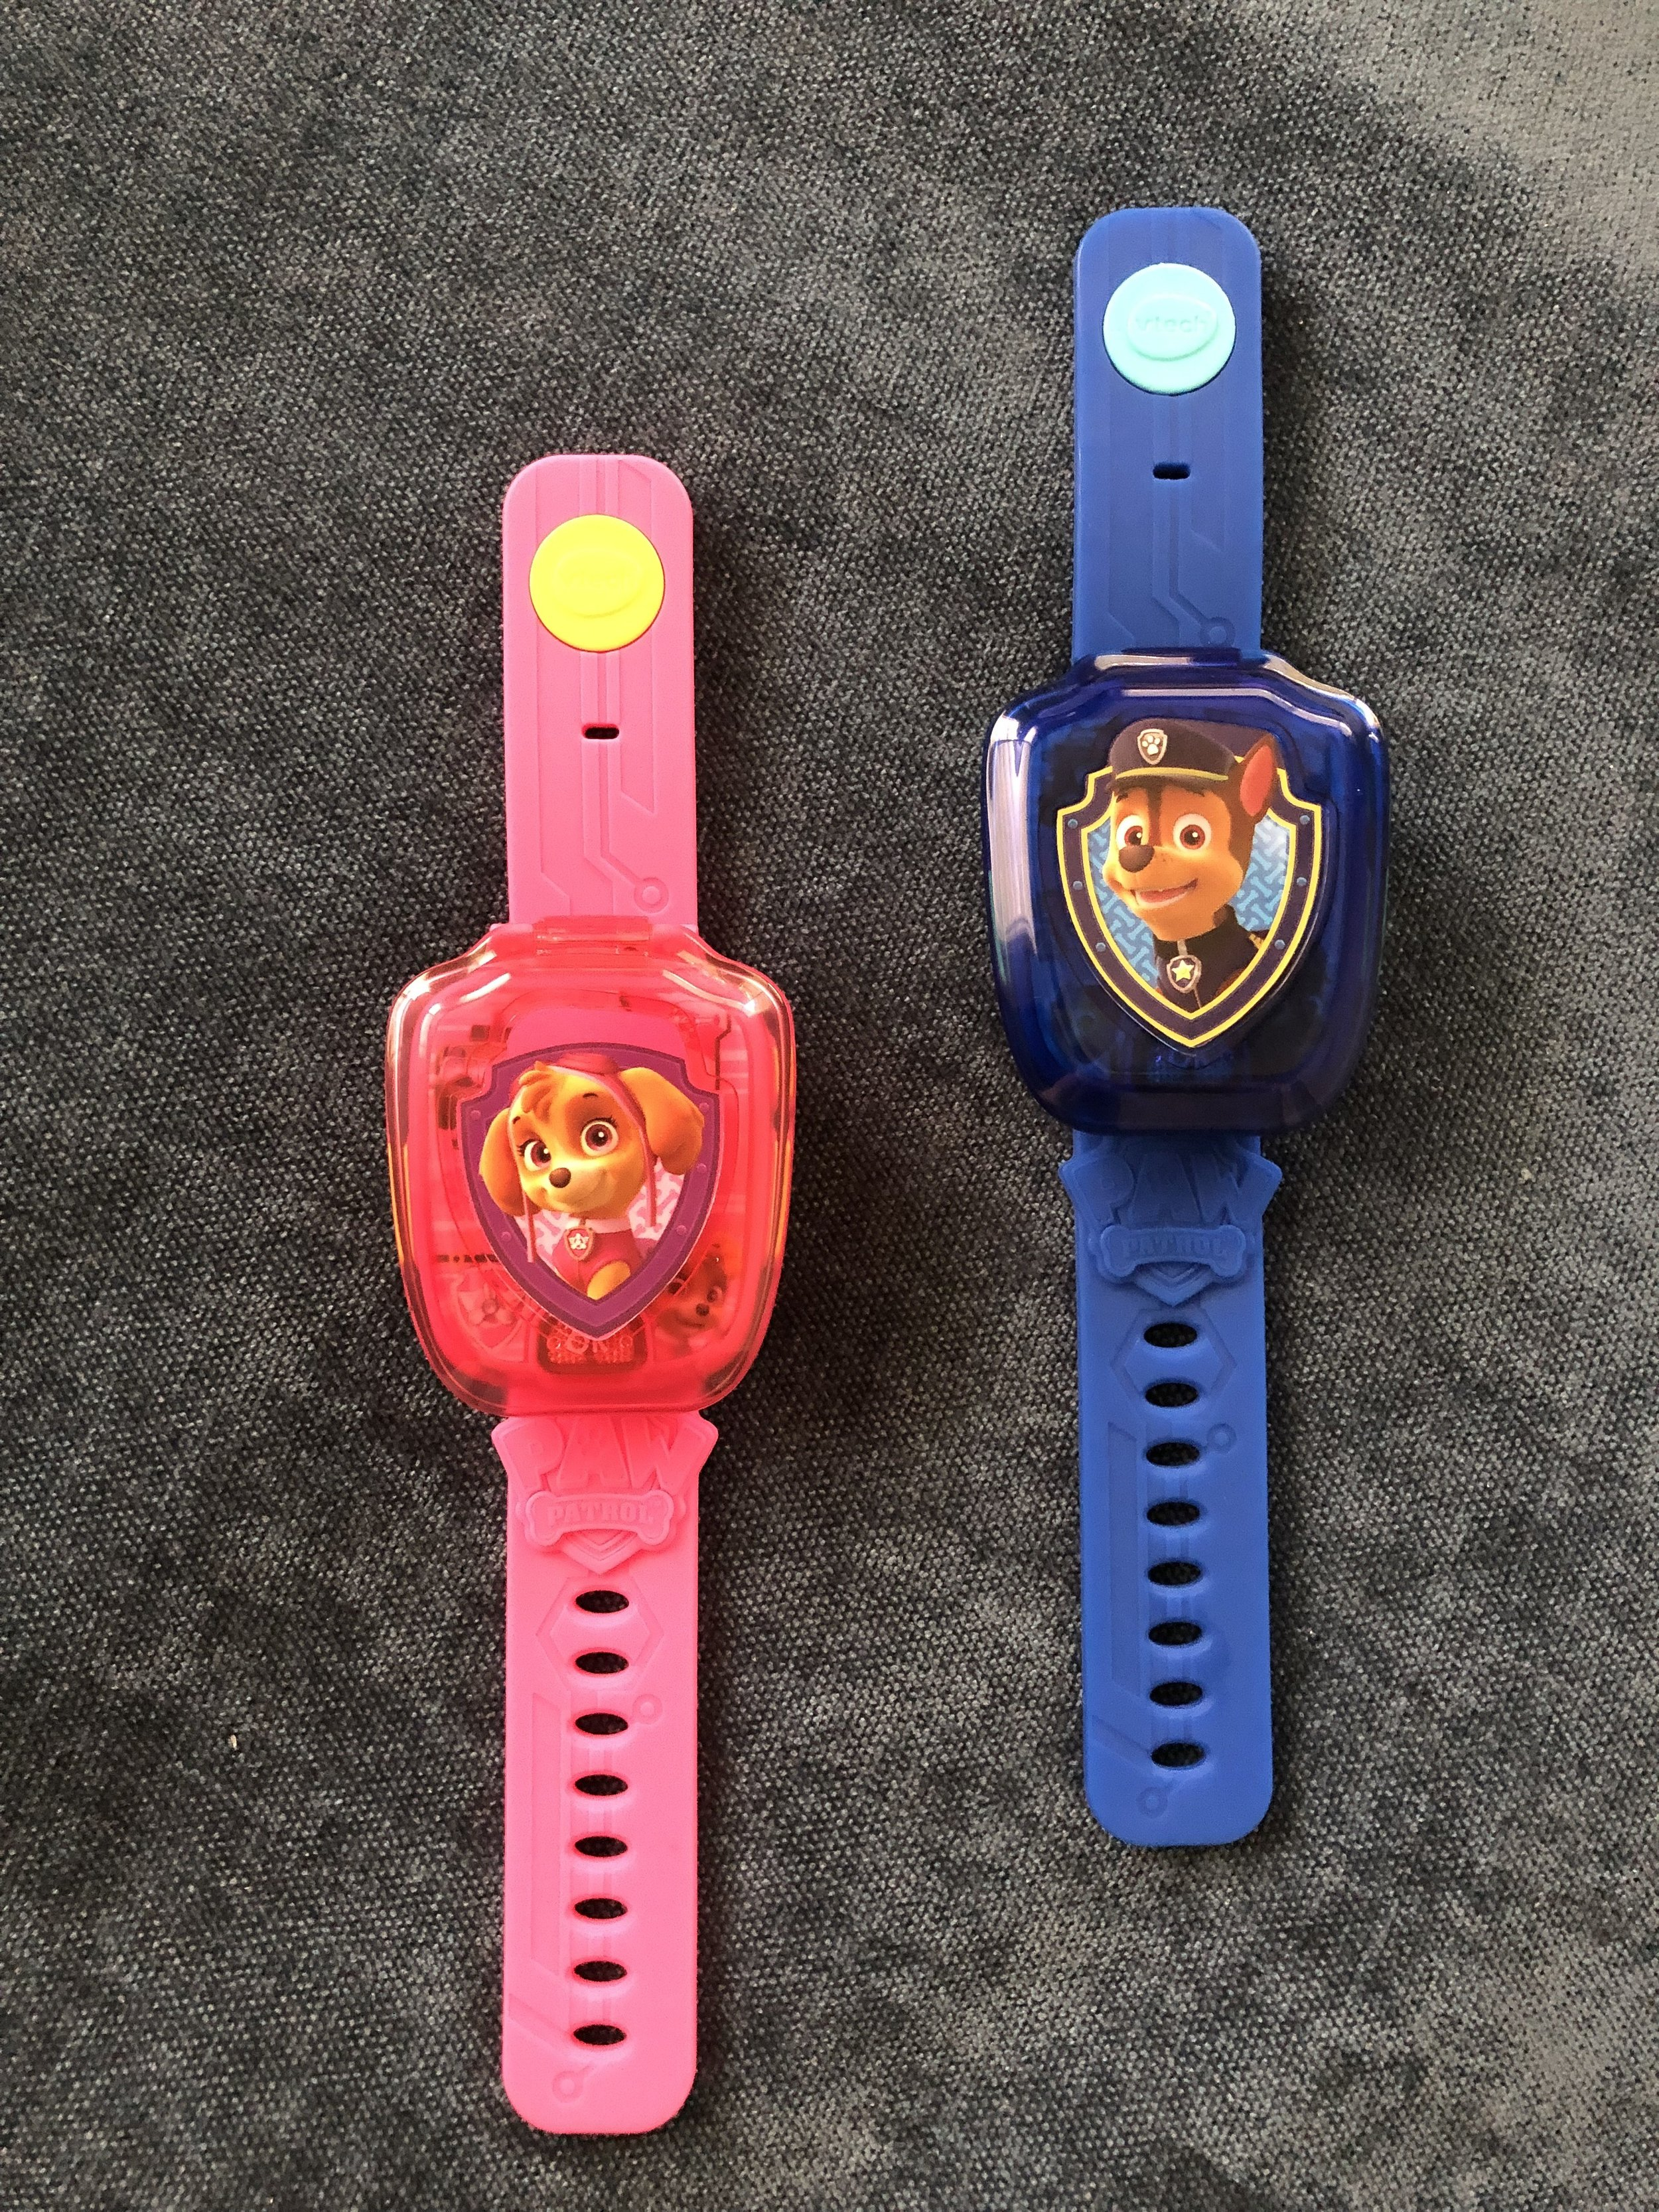 Paw Patrol Learning Watches